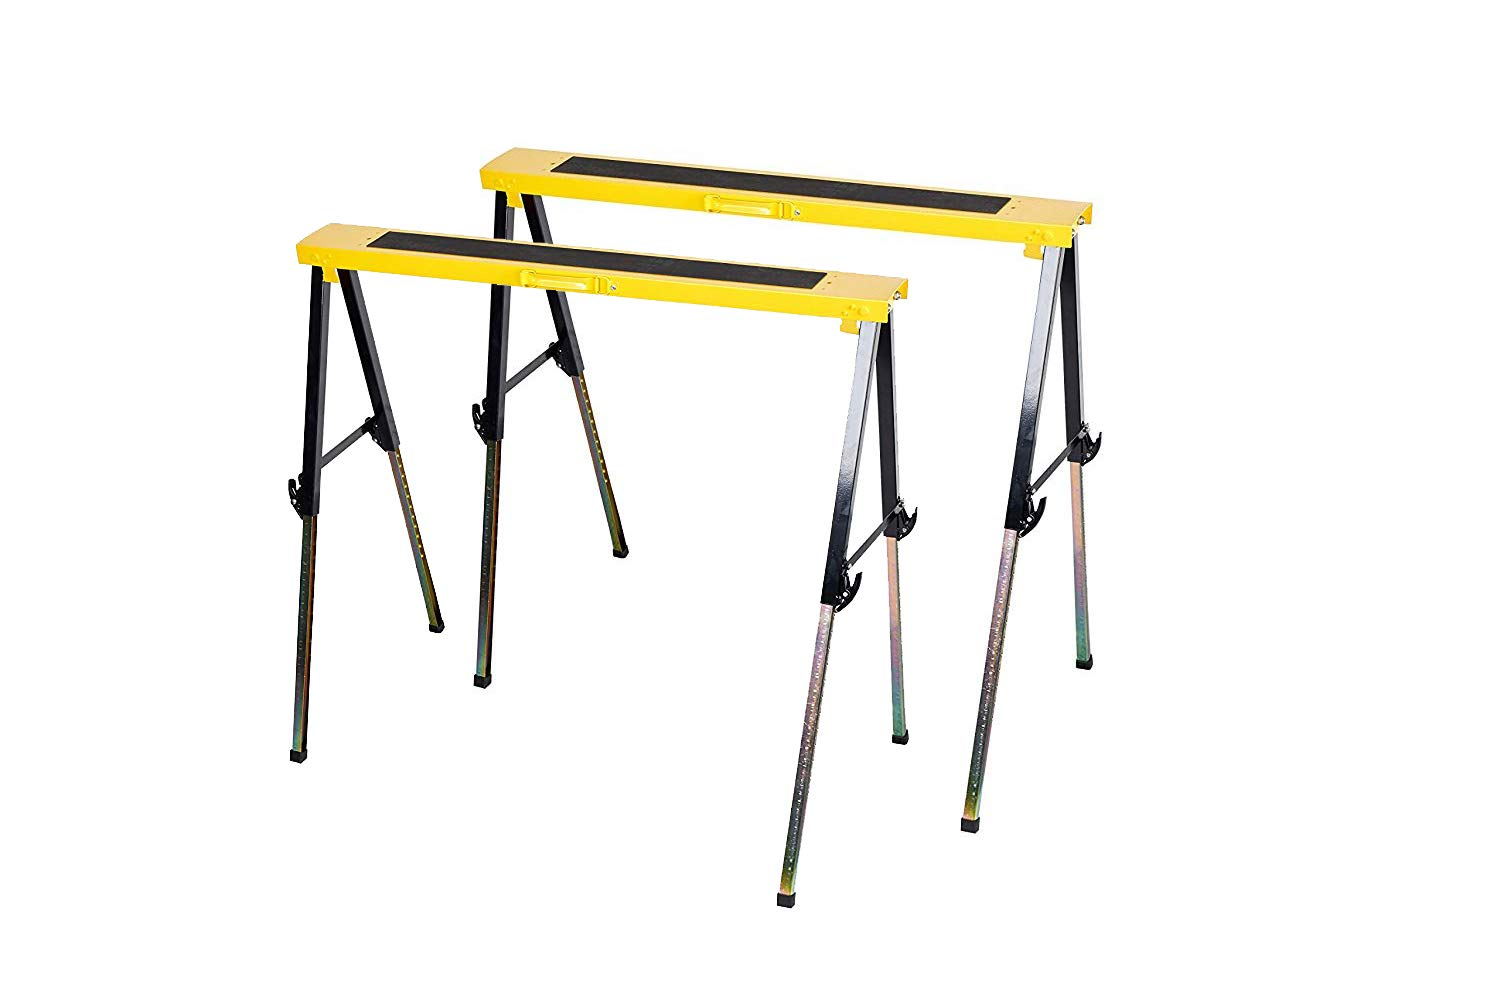 Foldable Legs Adjustable 12 Position Height Metal Sawhorse Brackets Twin Pack Capacity 500LBS (Each 250LBS)